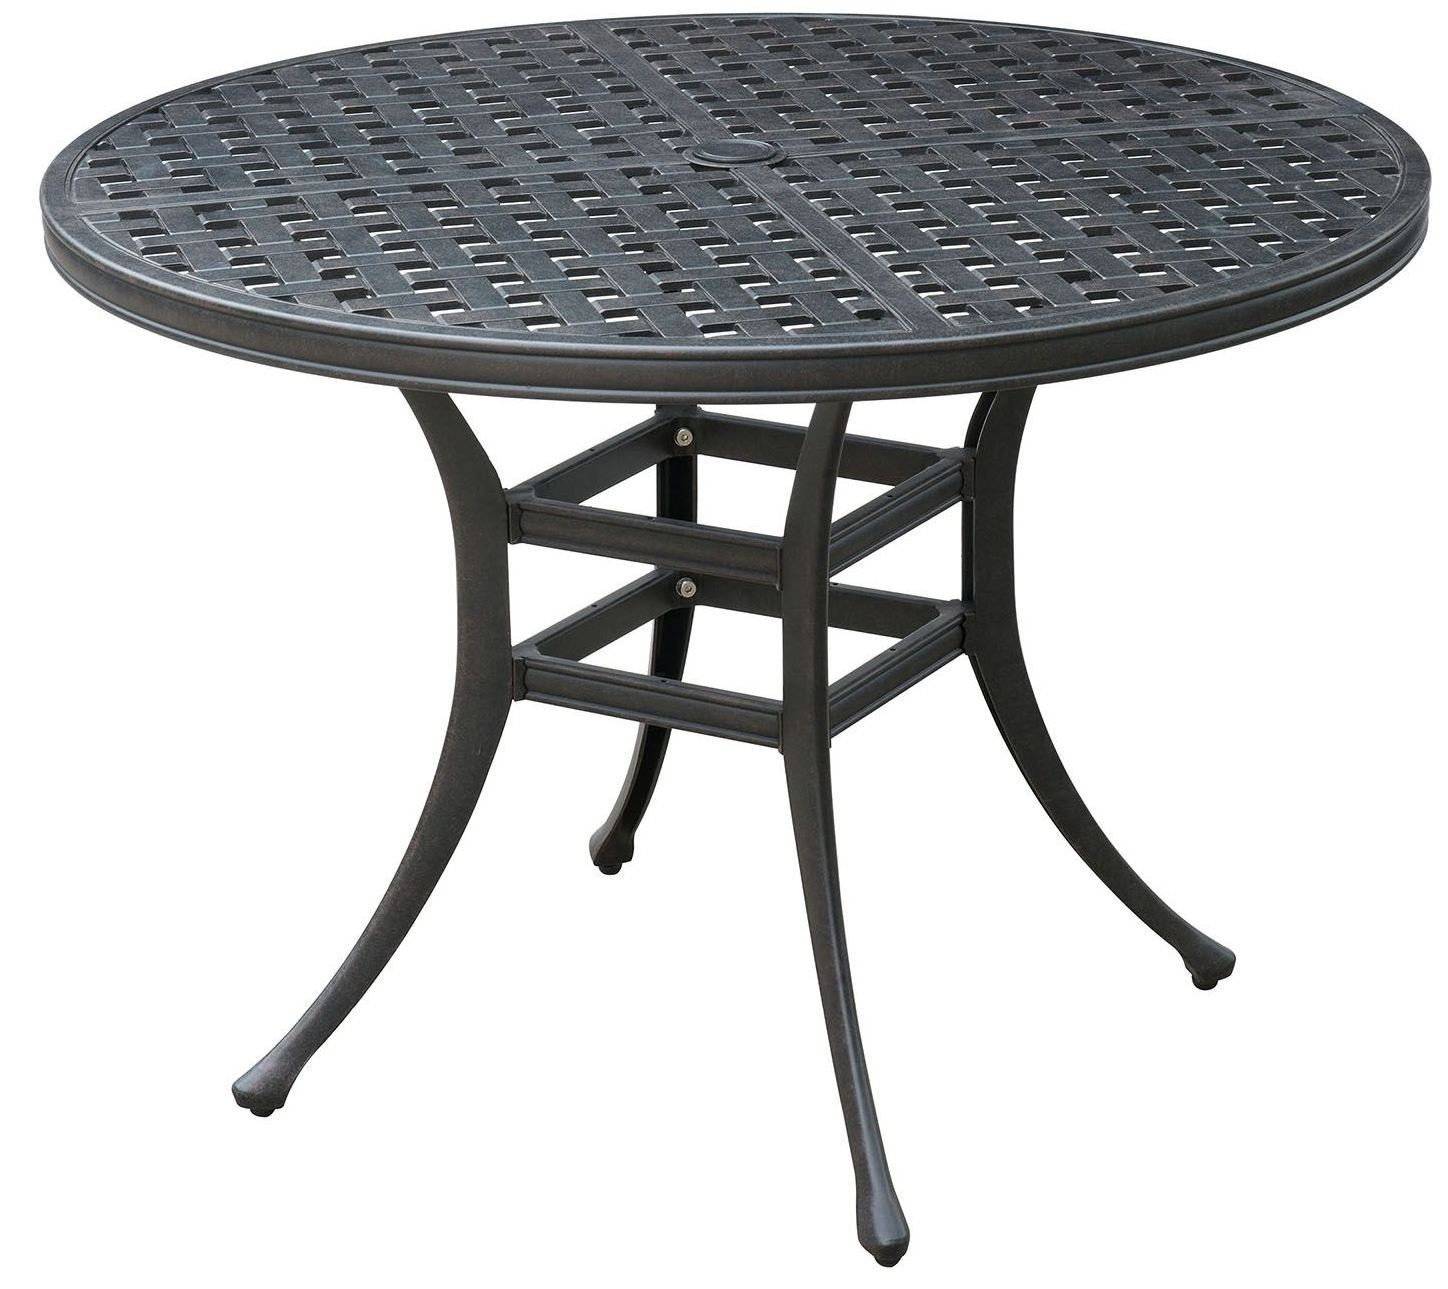 Best ideas about Round Patio Dining Table . Save or Pin Chiara II Dark Gray Round Patio Dining Table CM OT2303 RT Now.